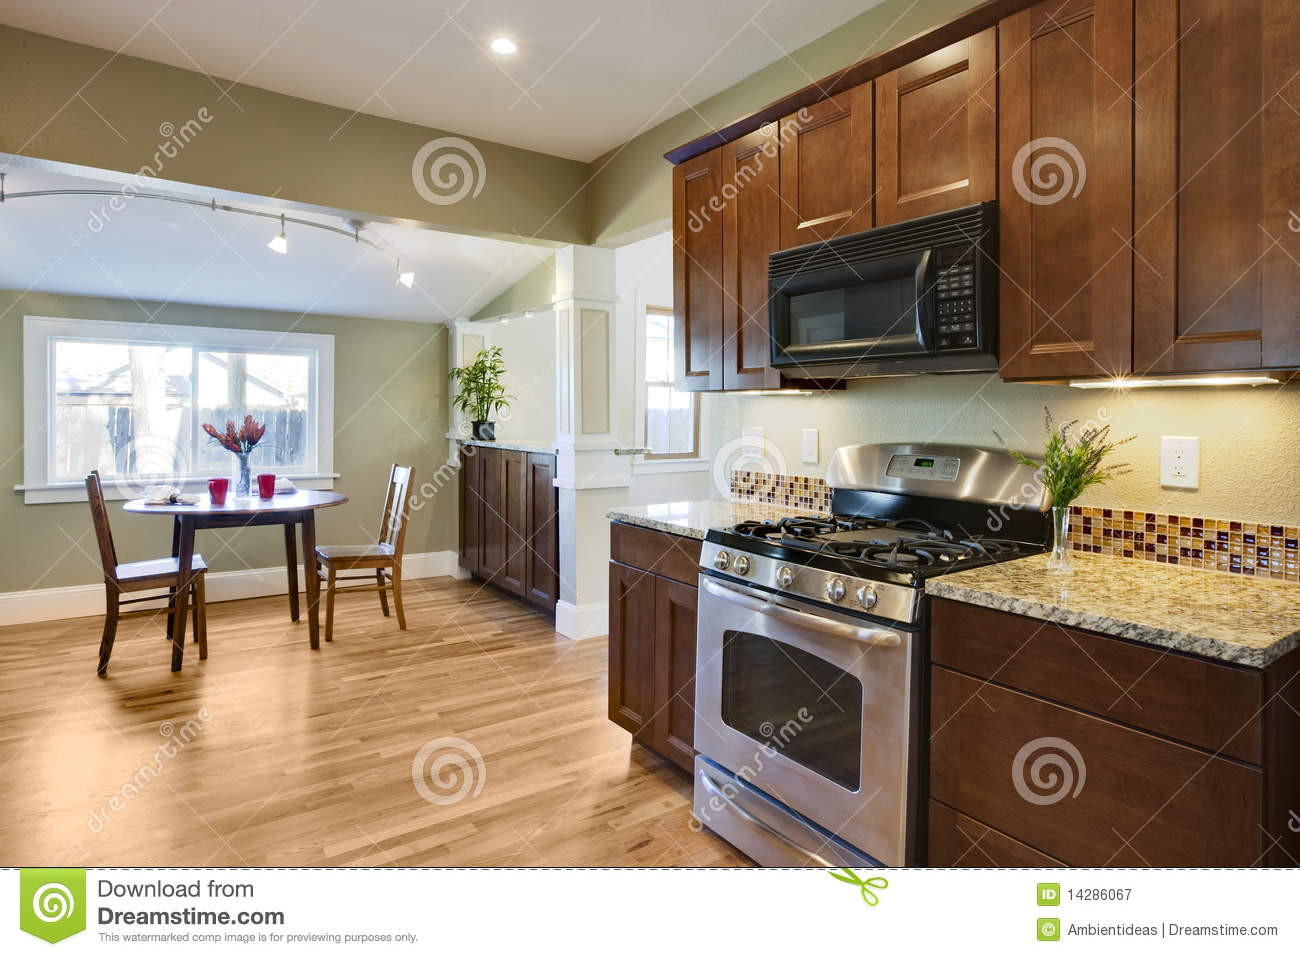 Wood Floors For Kitchen Remodel Kitchen With Wood Flooring Royalty Free Stock Photography